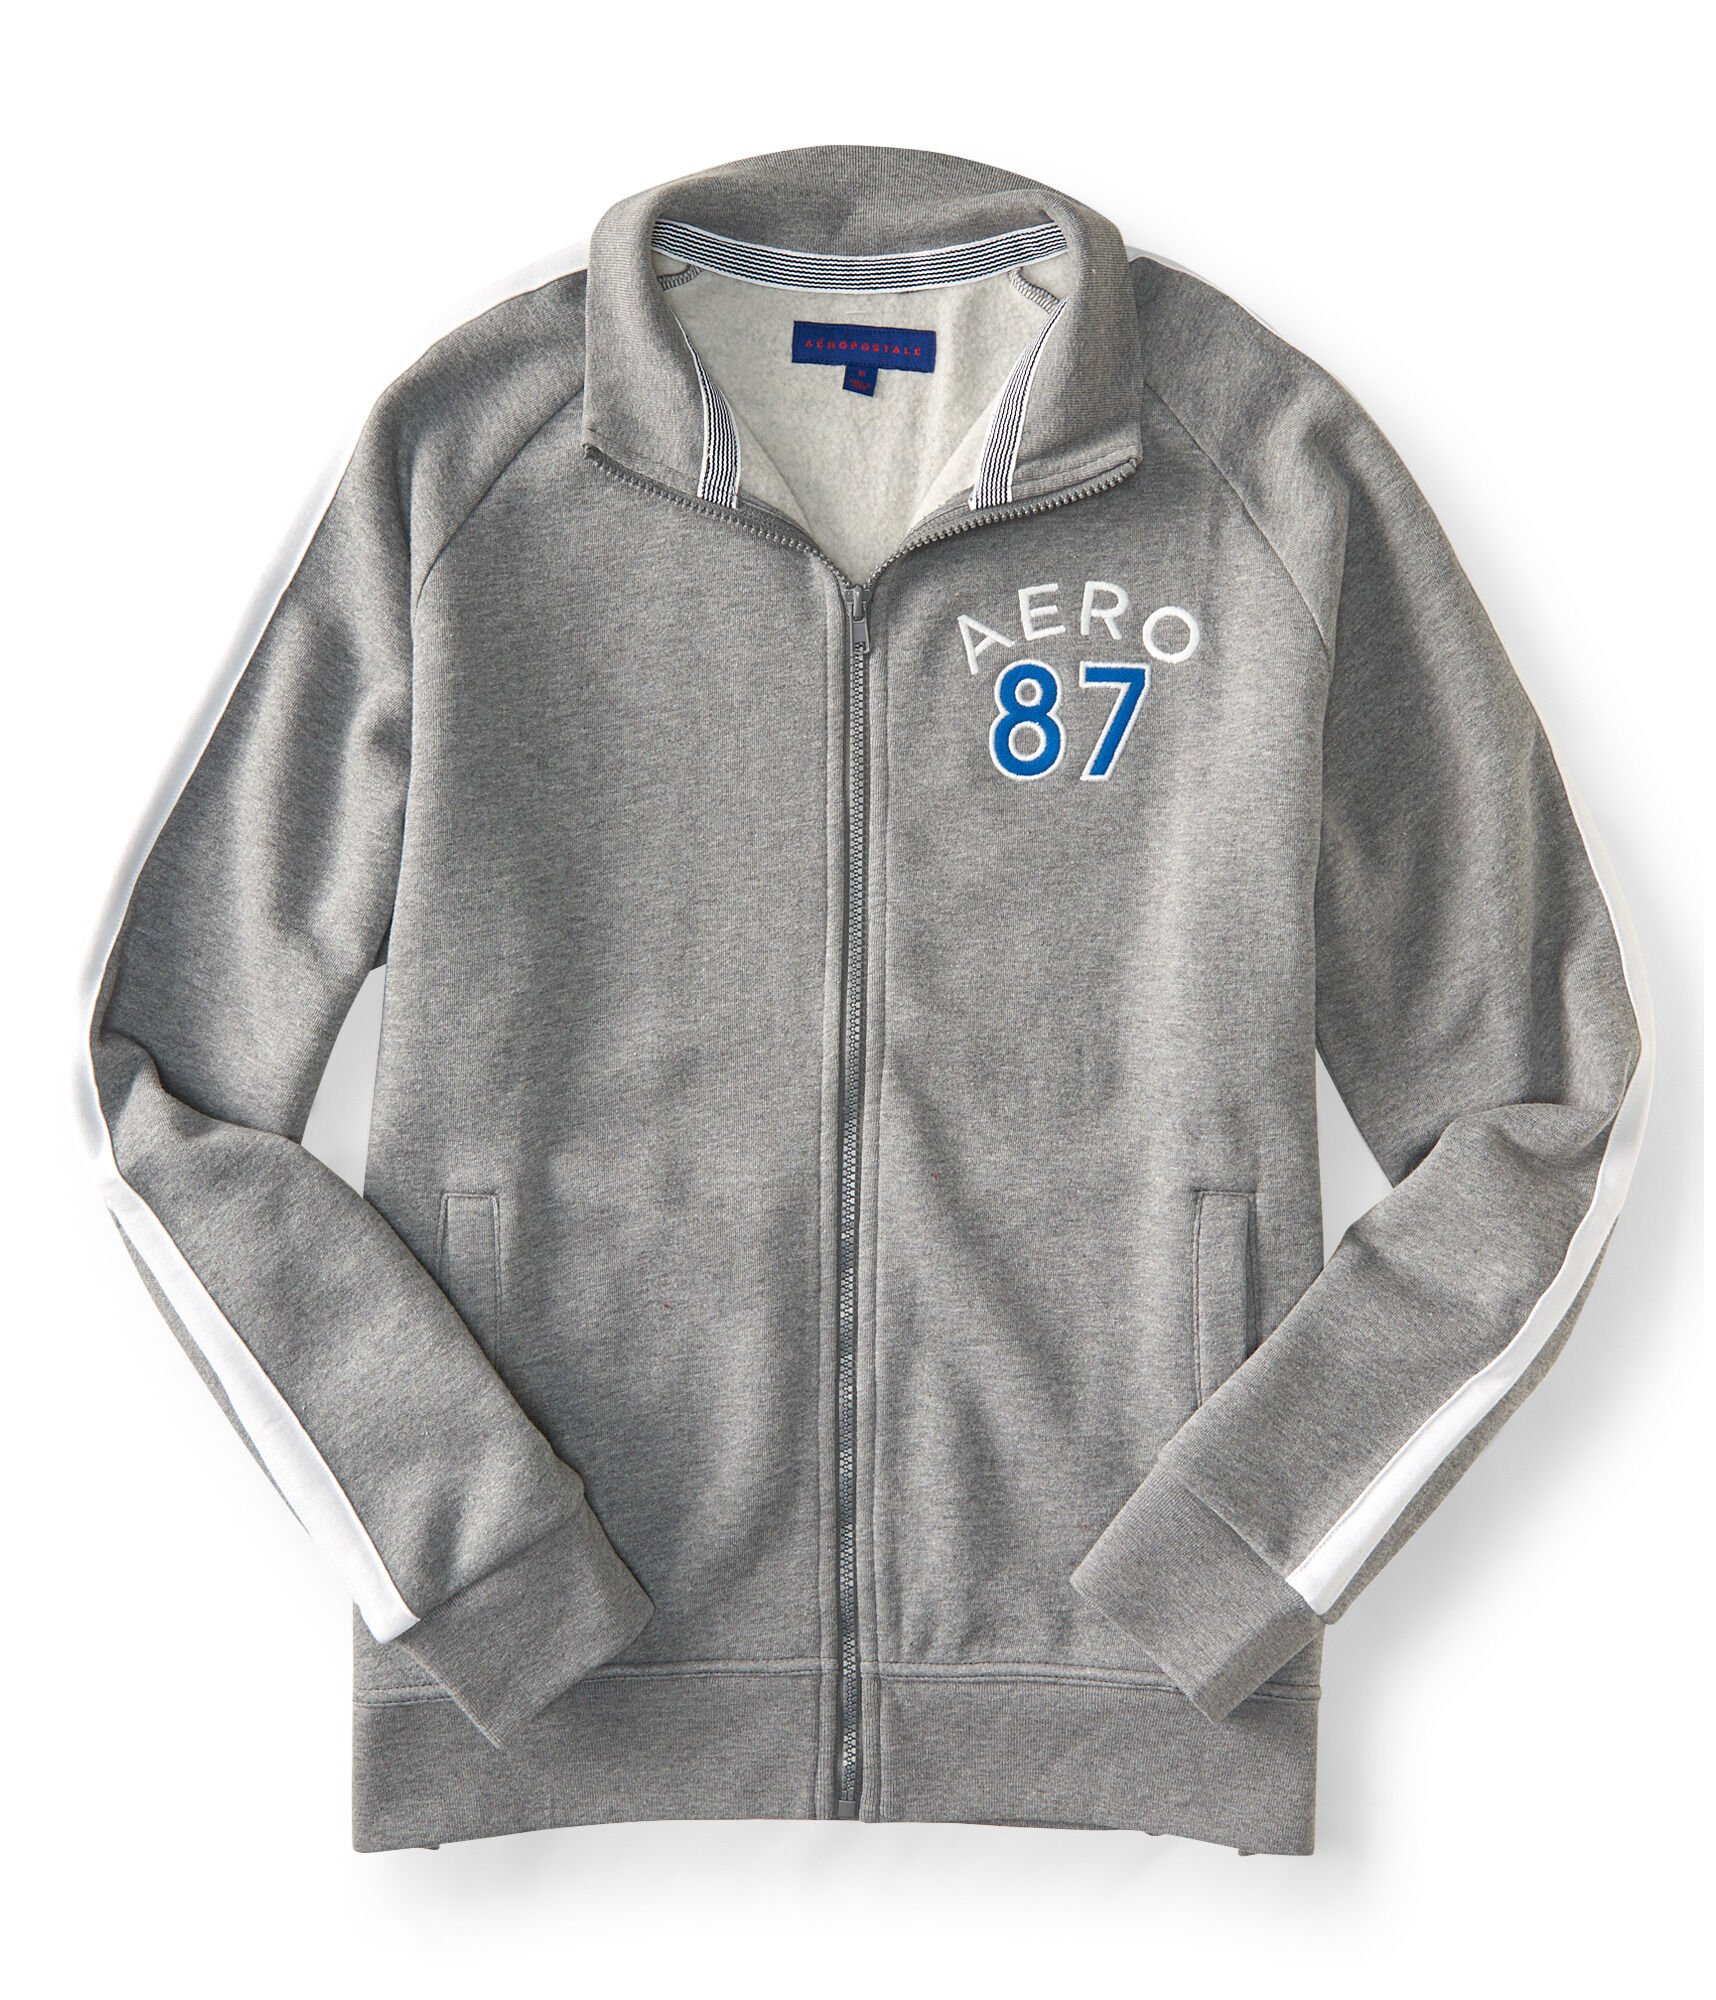 Aero Men's Logo Full-Zip Track Jacket (Several Colors)